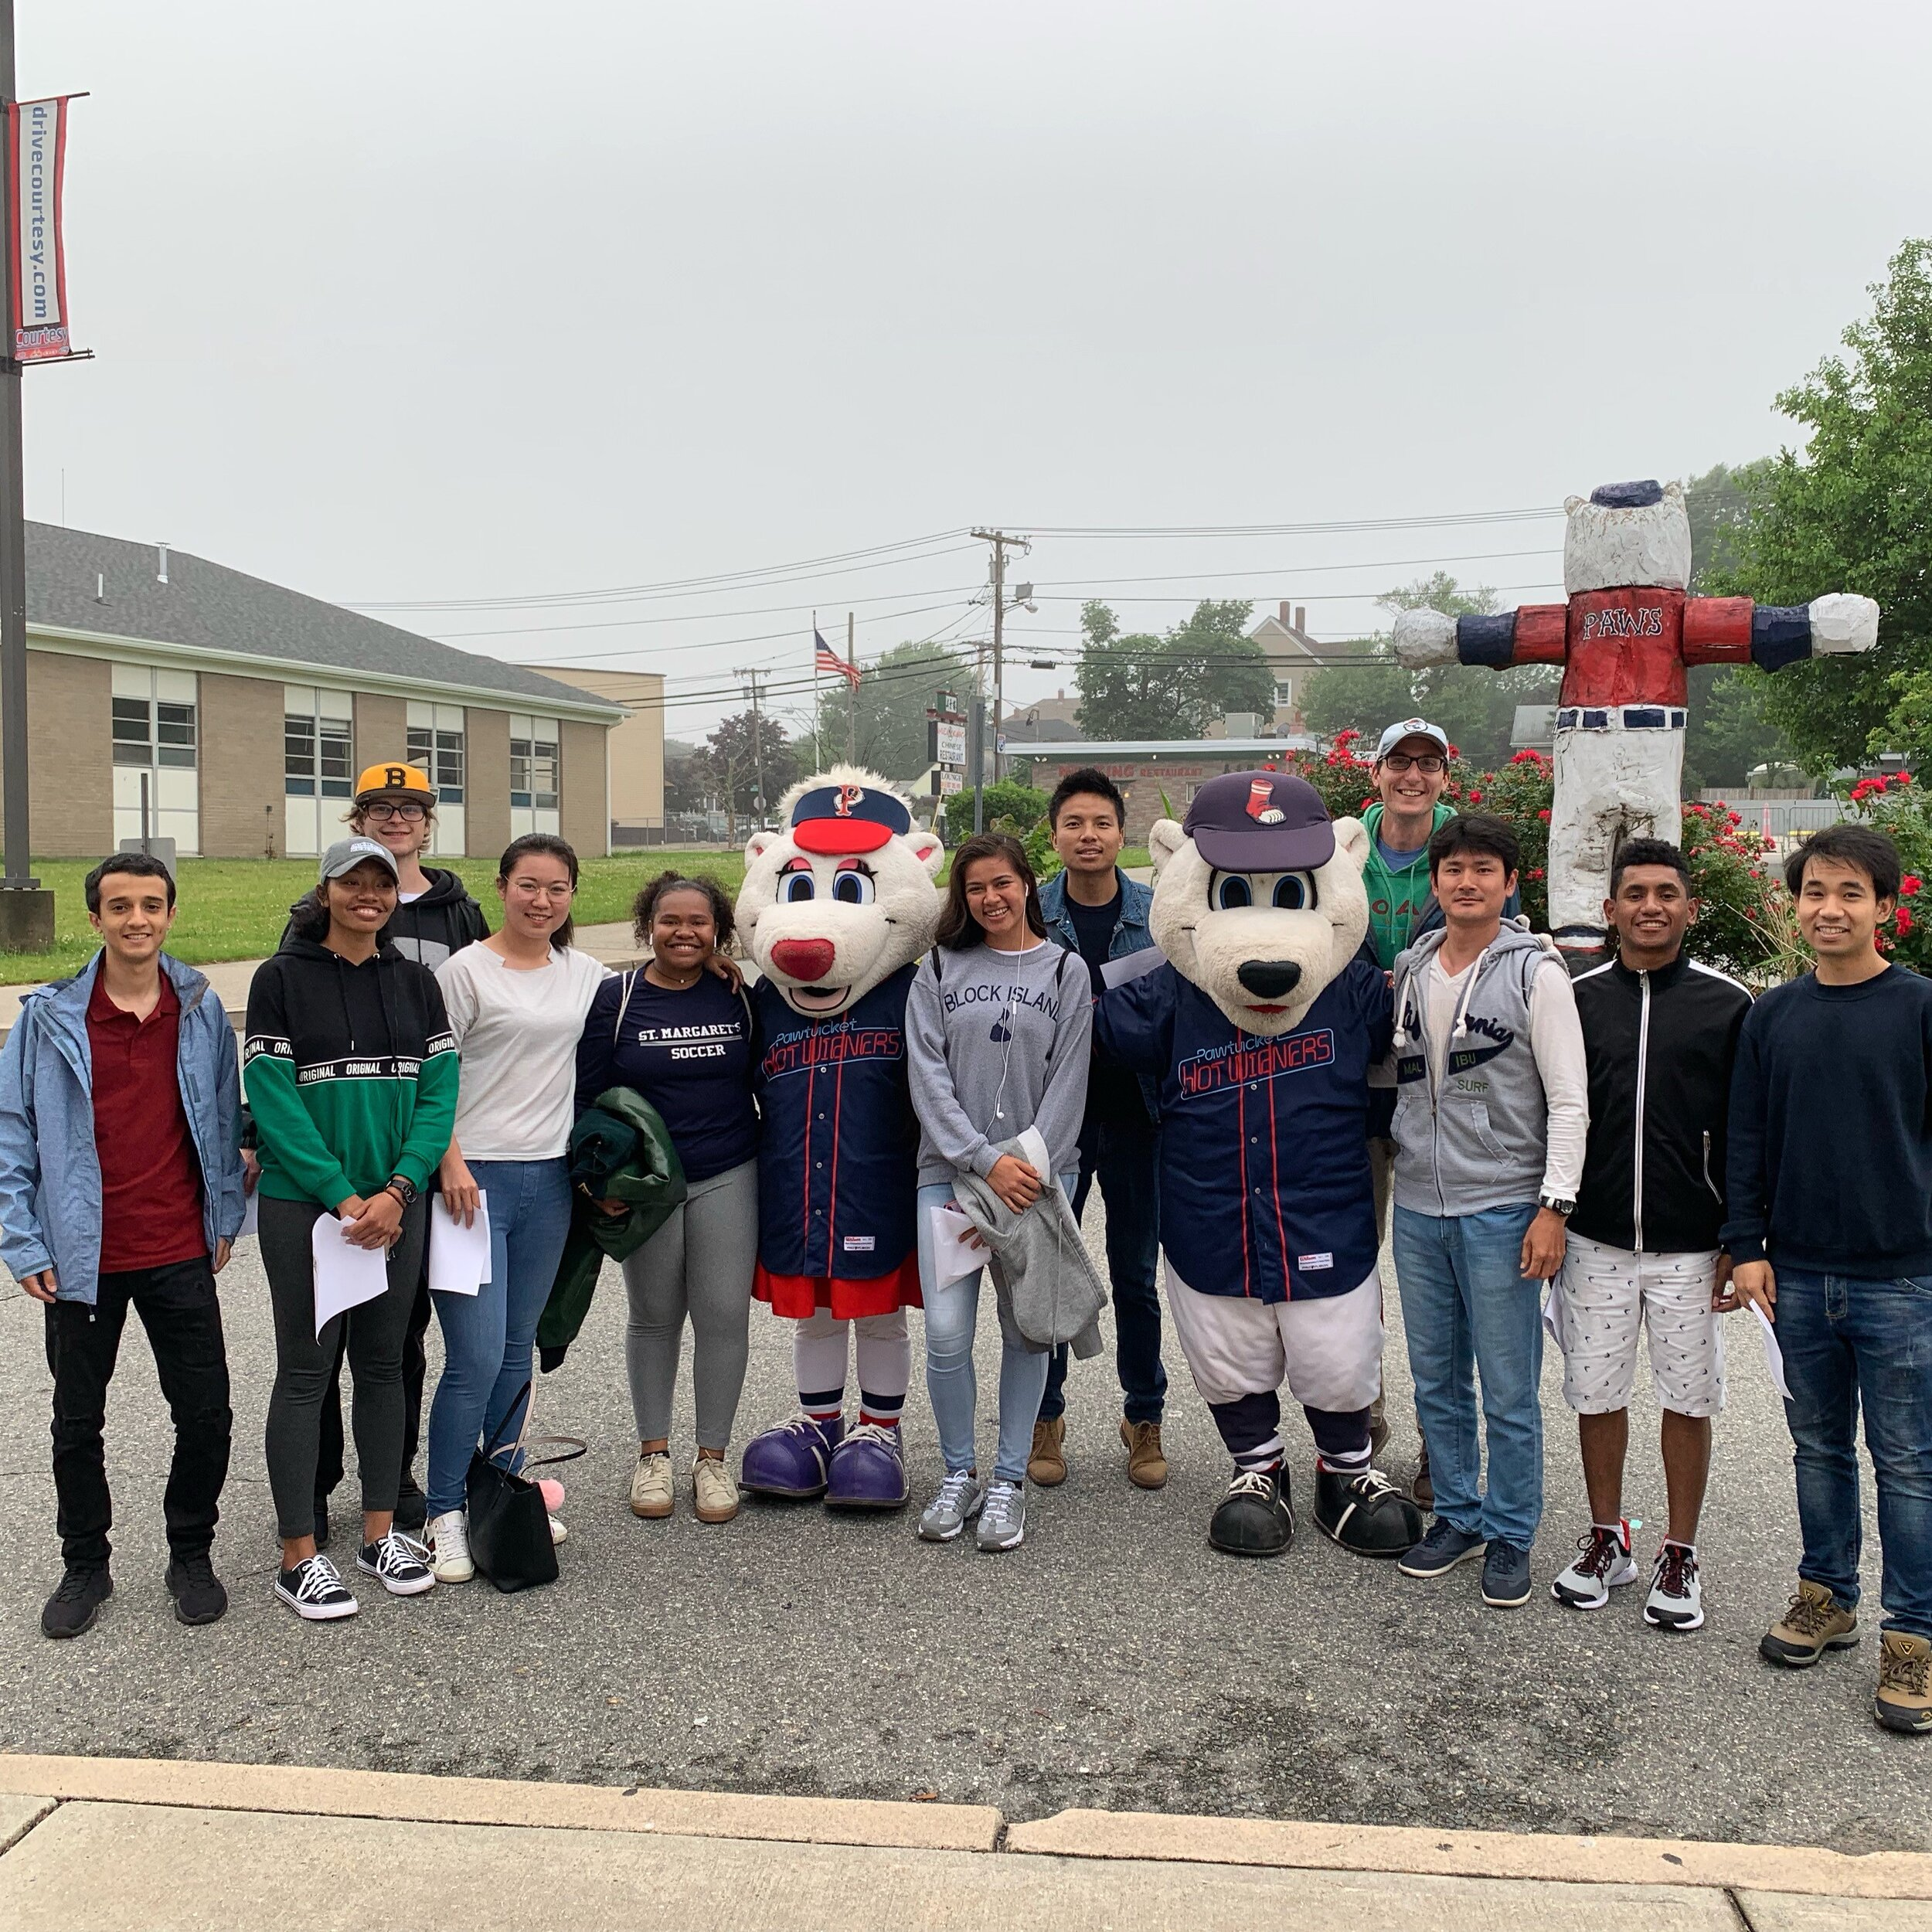 Copy of English language studies and cultural immersion program at the PawSox